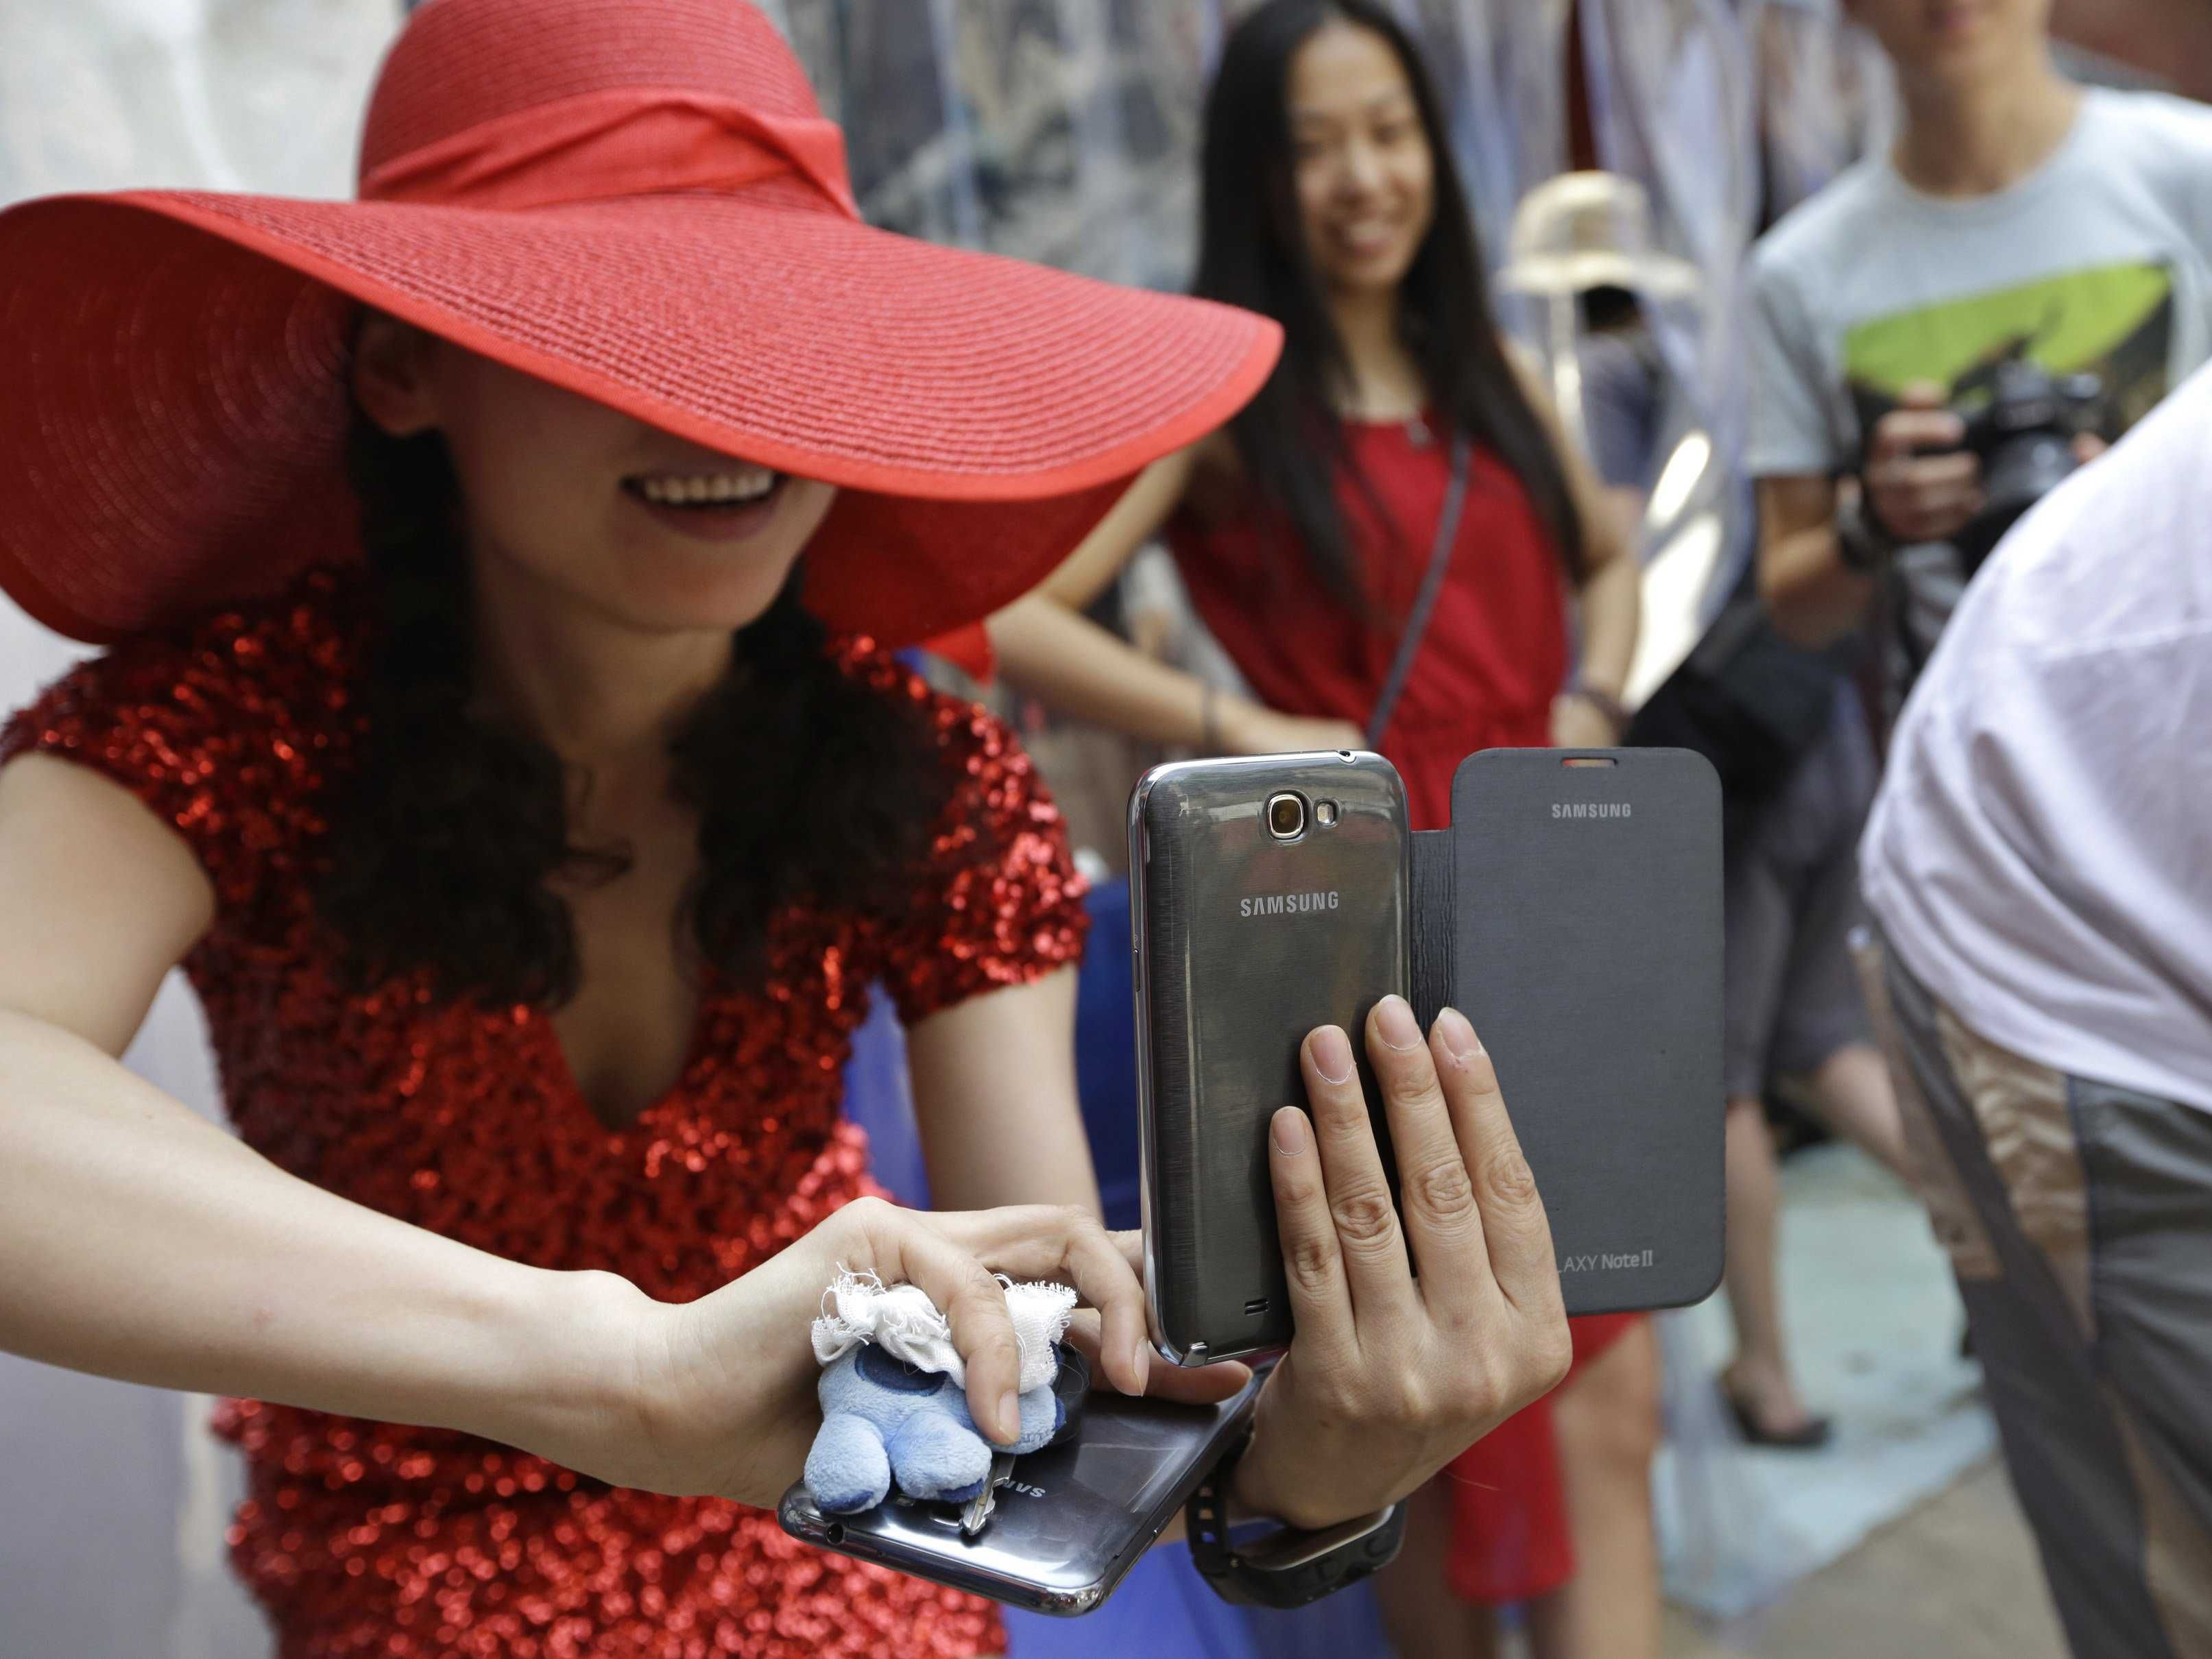 Mobile-First Networks Are Taking Over Social Media Around The World